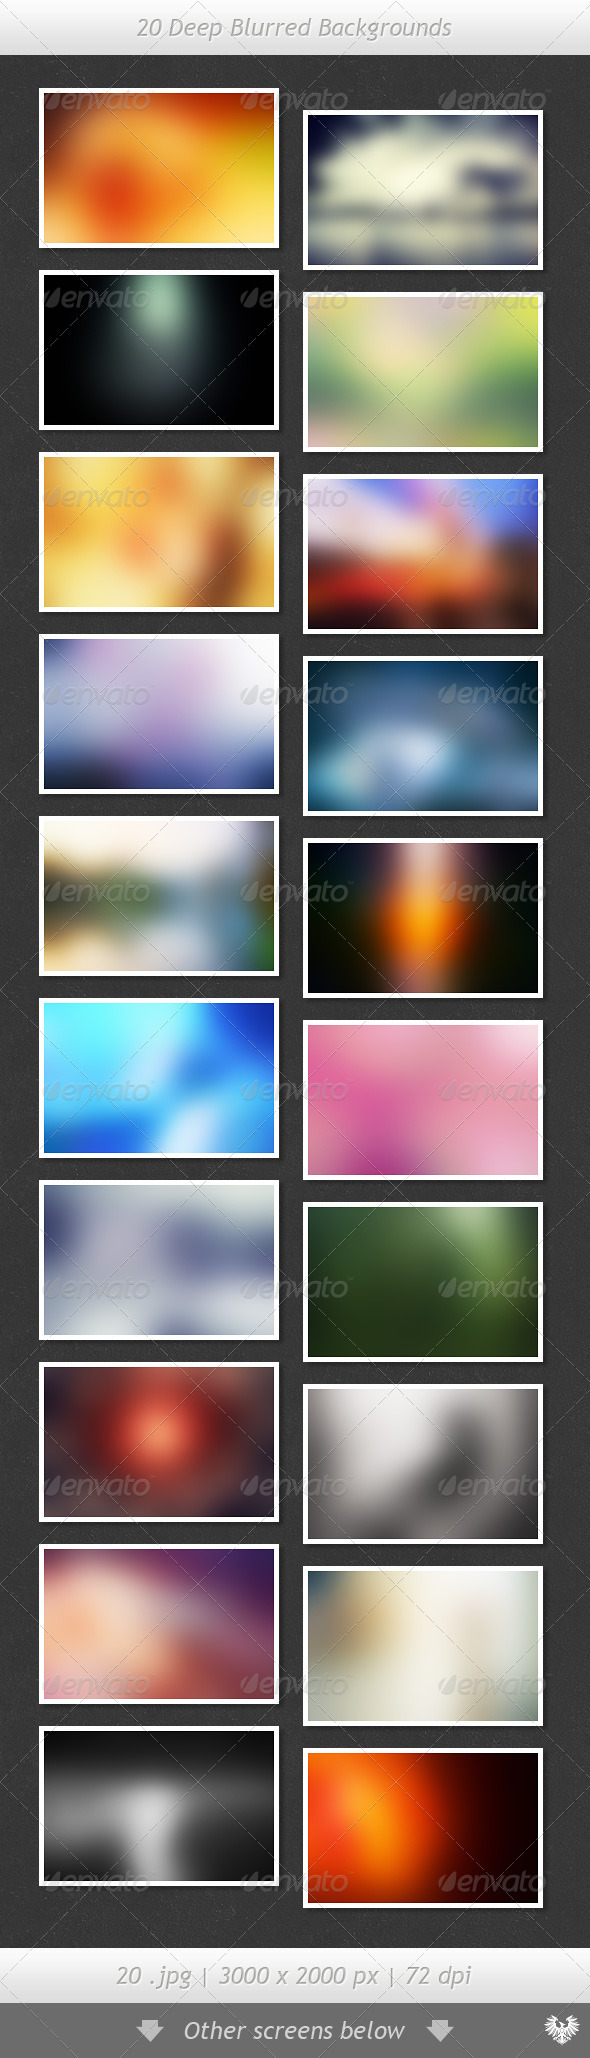 GraphicRiver 20 Deep Blurred Backgrounds 2686861